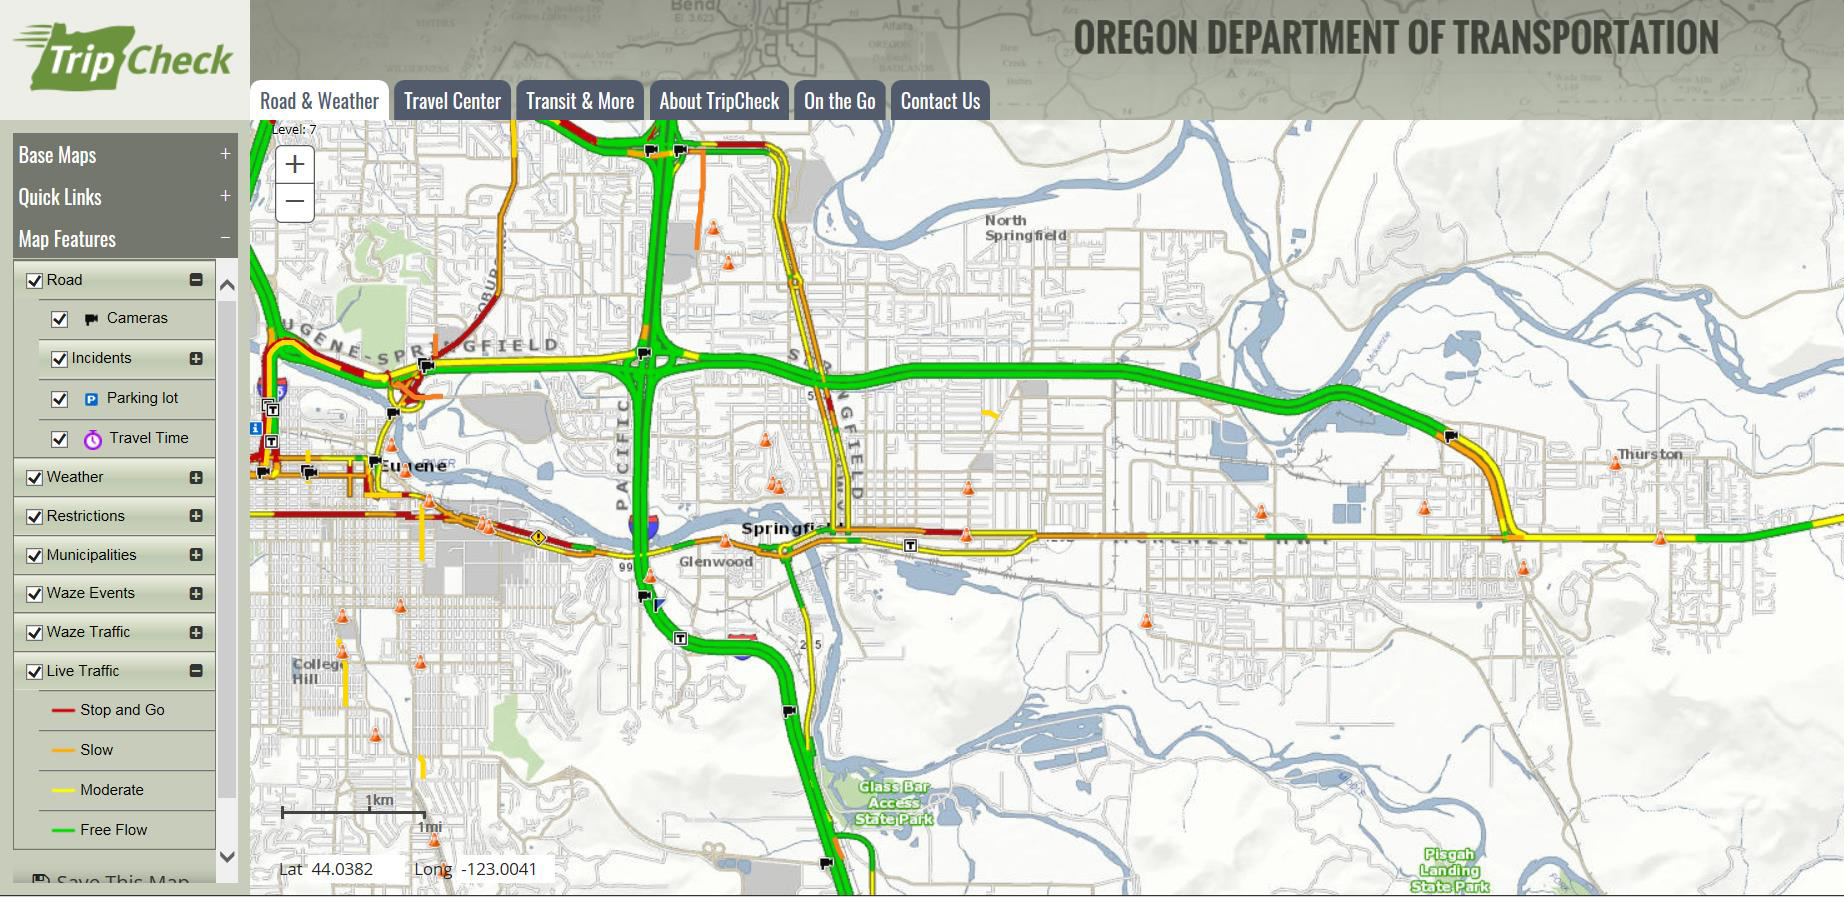 Image of ODOT's Trip Check Map